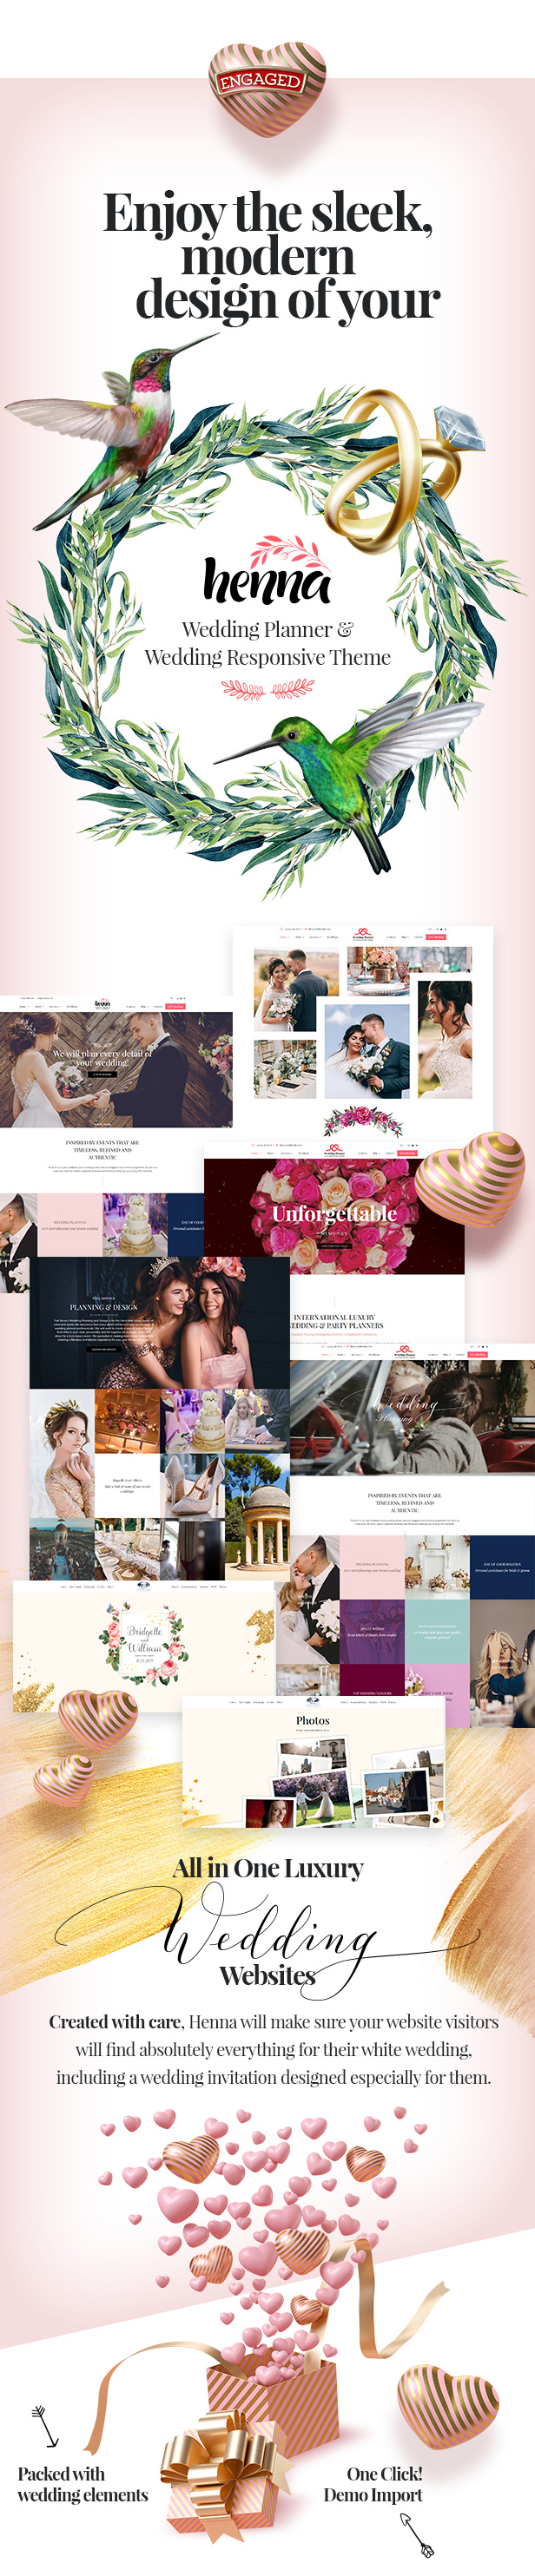 Henna - Wedding WordPress Theme - 1